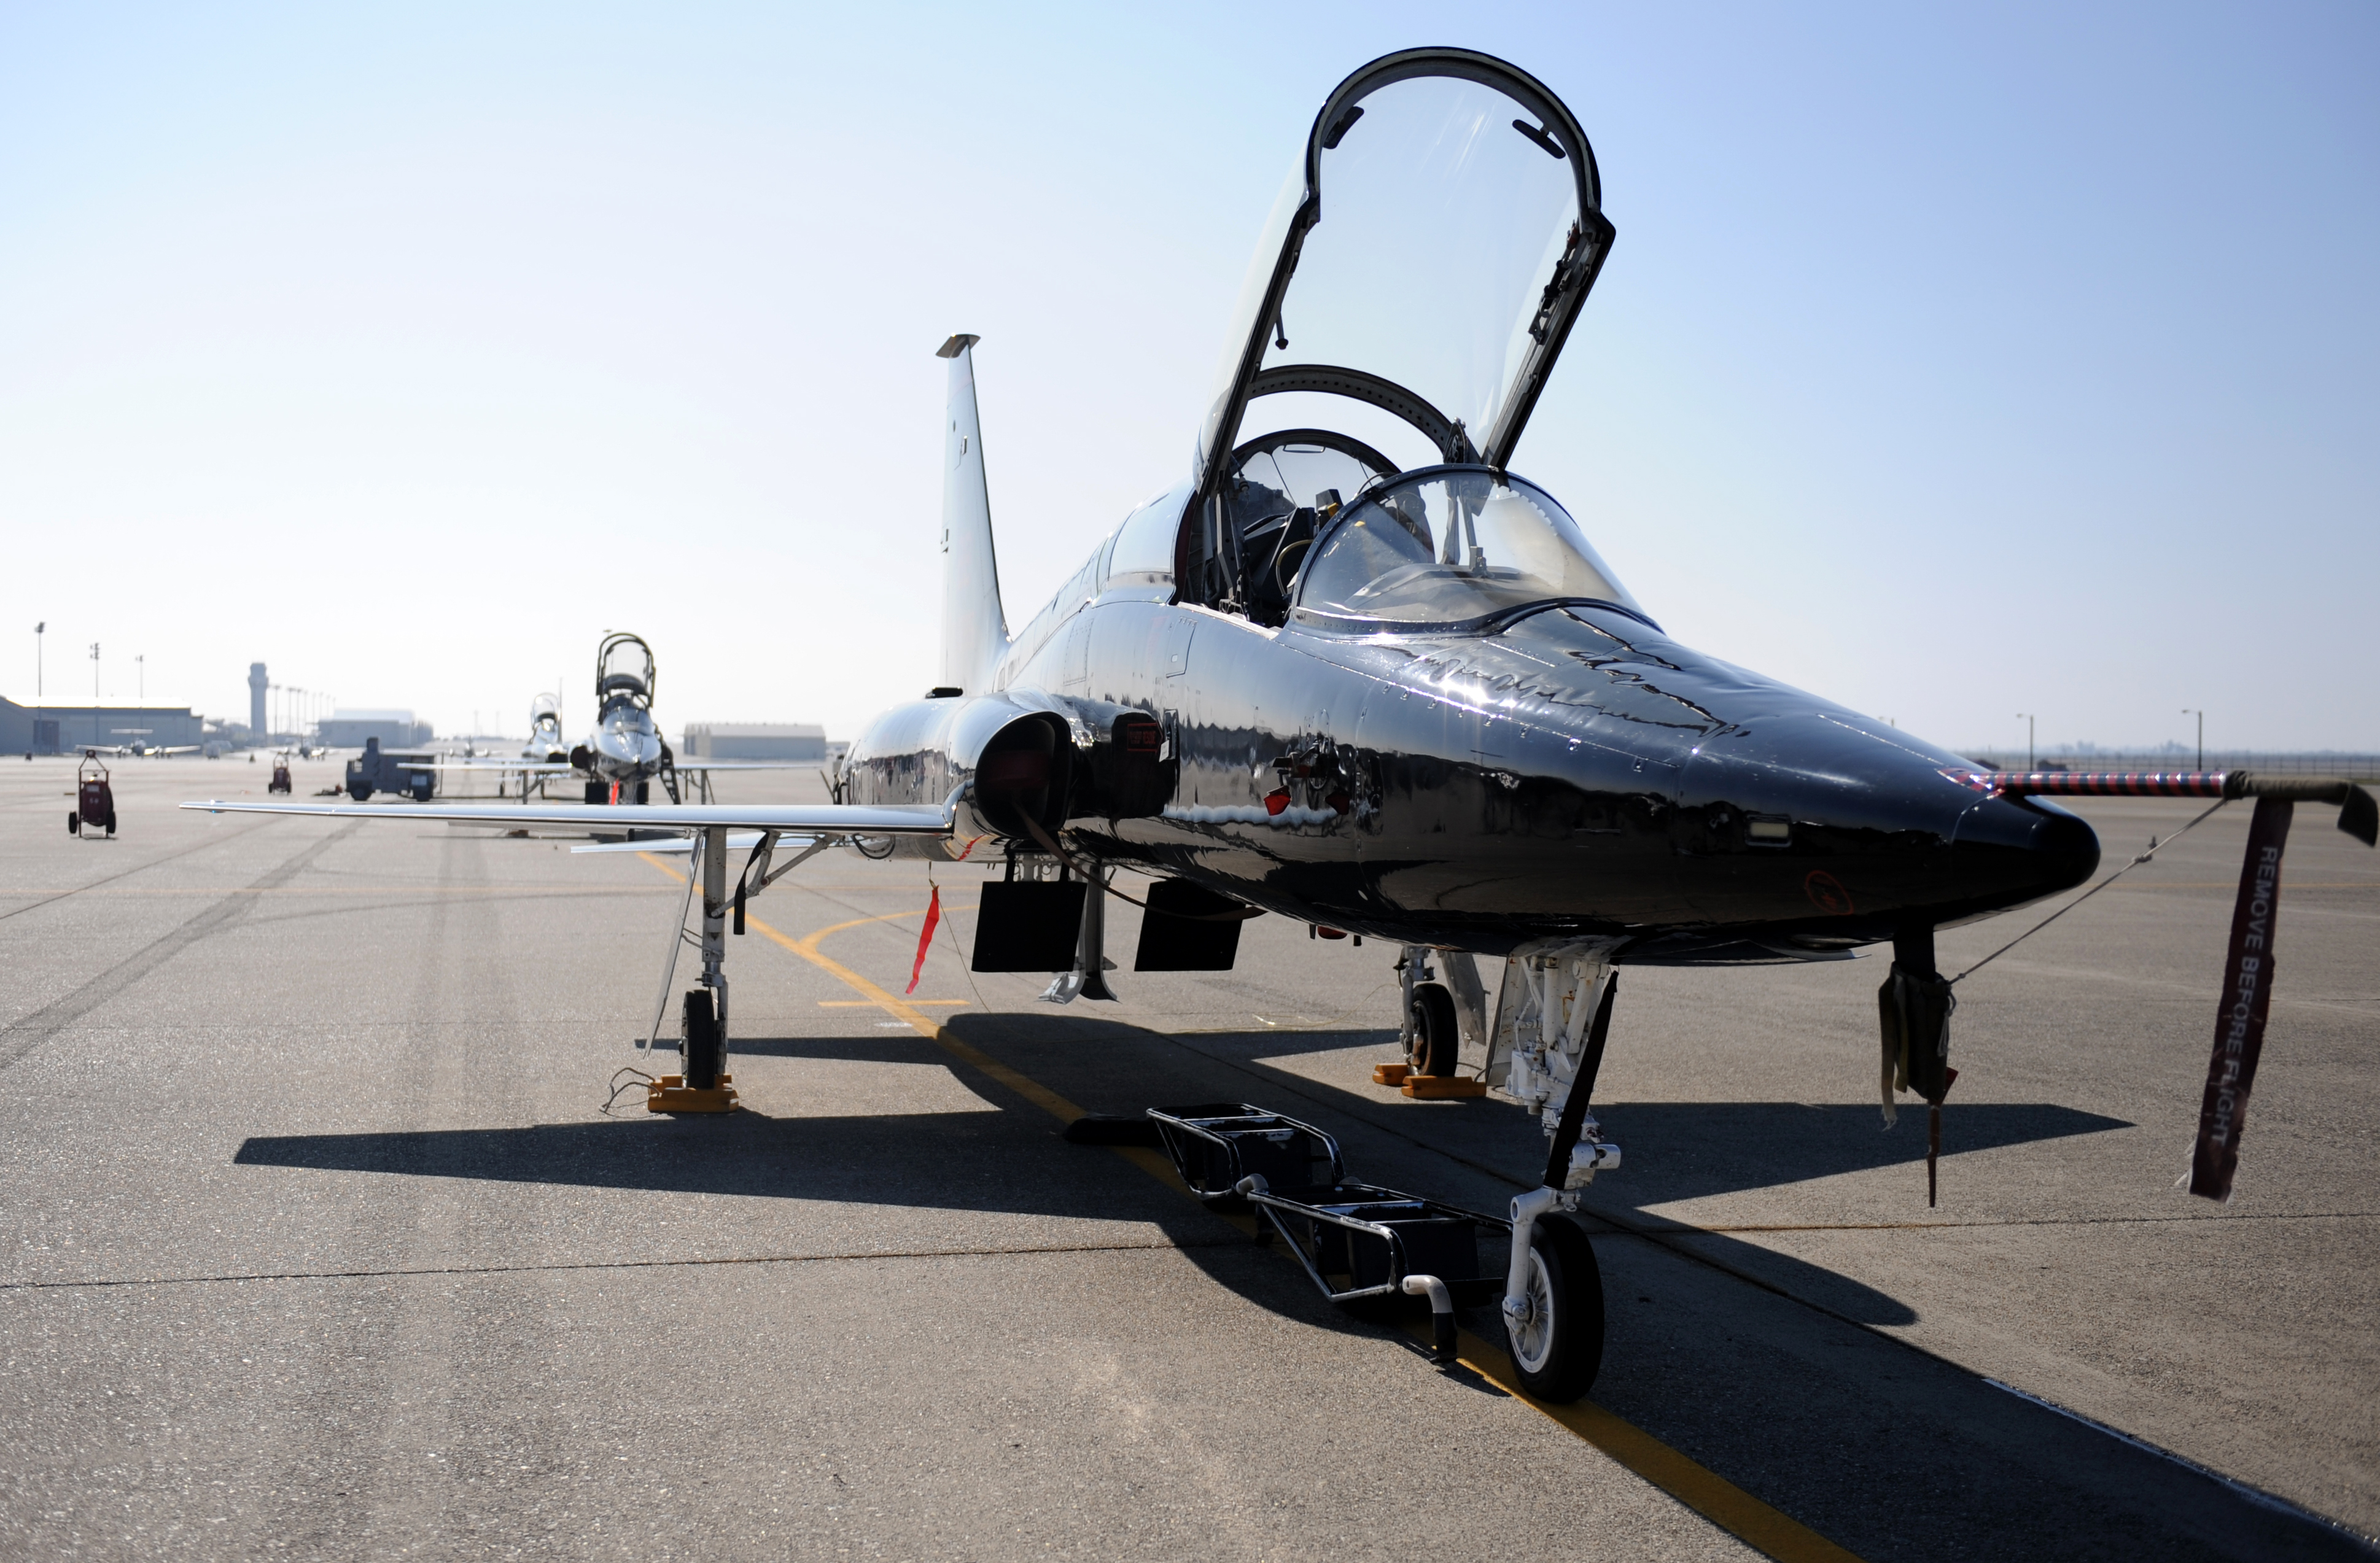 T-38A Talon (U.S. Air Force photo by Staff Sgt. Robert M. Trujillo/Released)